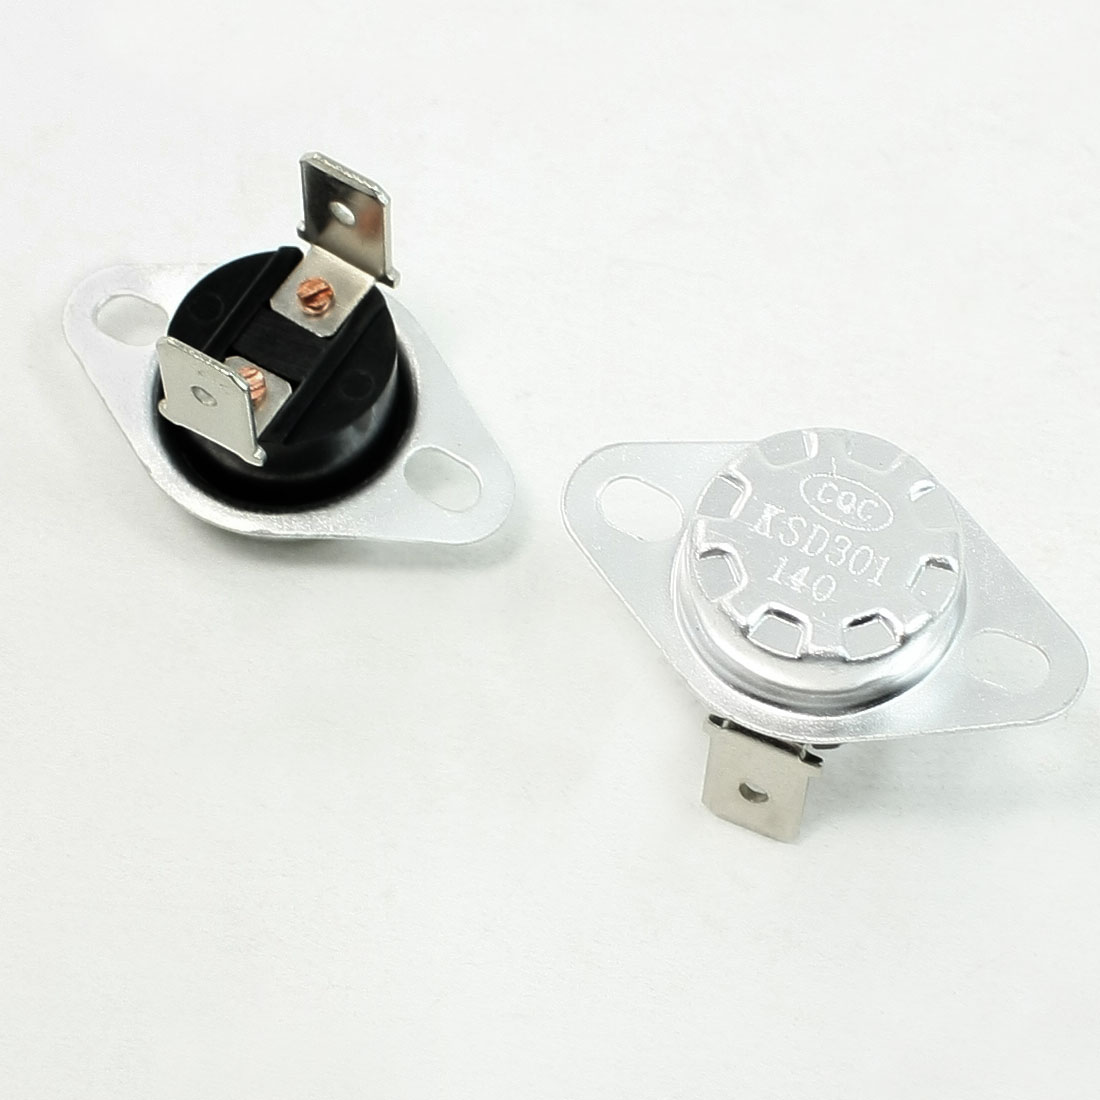 KSD301 140 Celsius 250V 10A N.C. Temperature Control Switch Thermostat